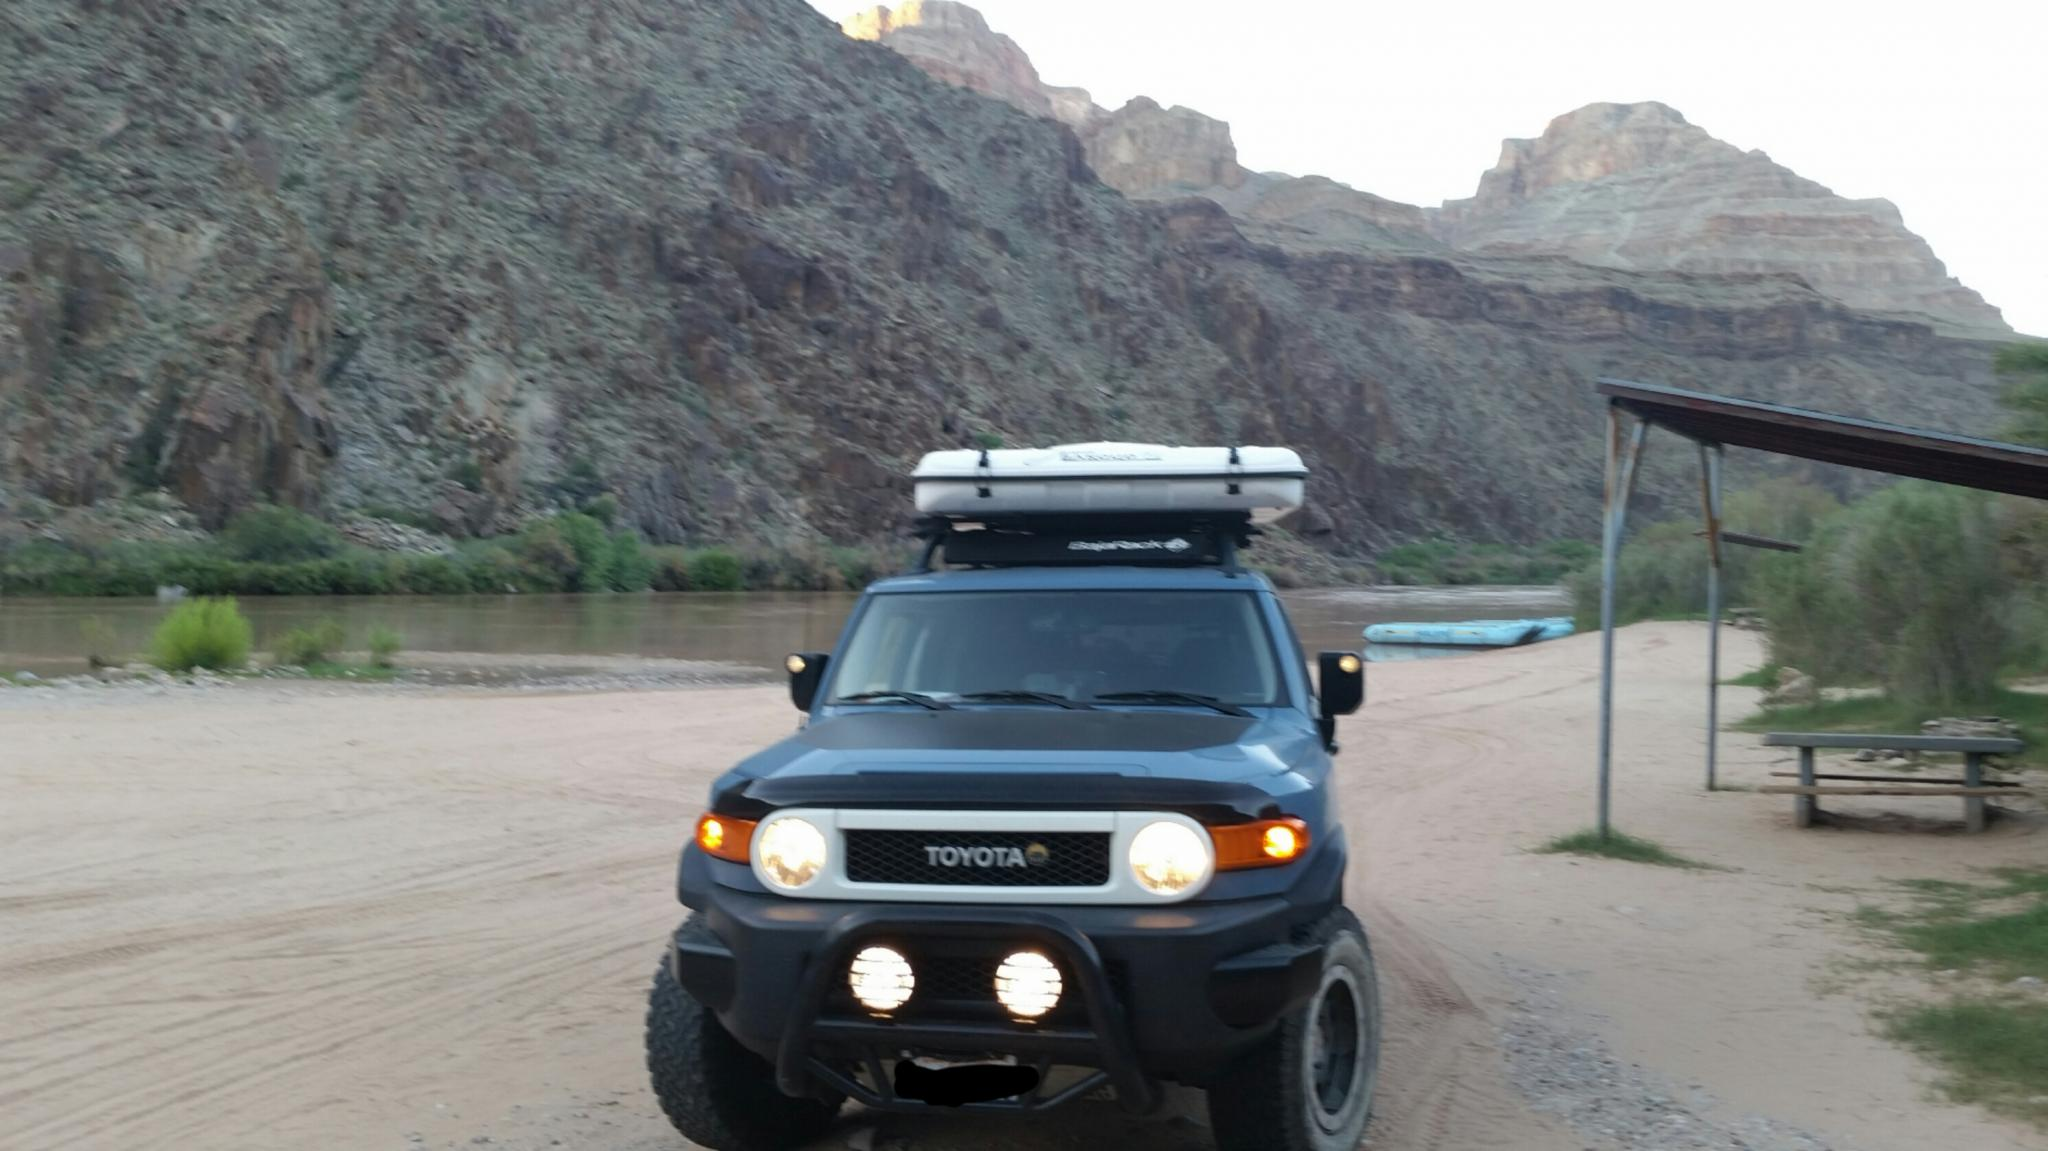 Overroam Roof Top Tent Denver Outers Fj Cruiser Roofrac Toyota Rack Expedition 07 2016